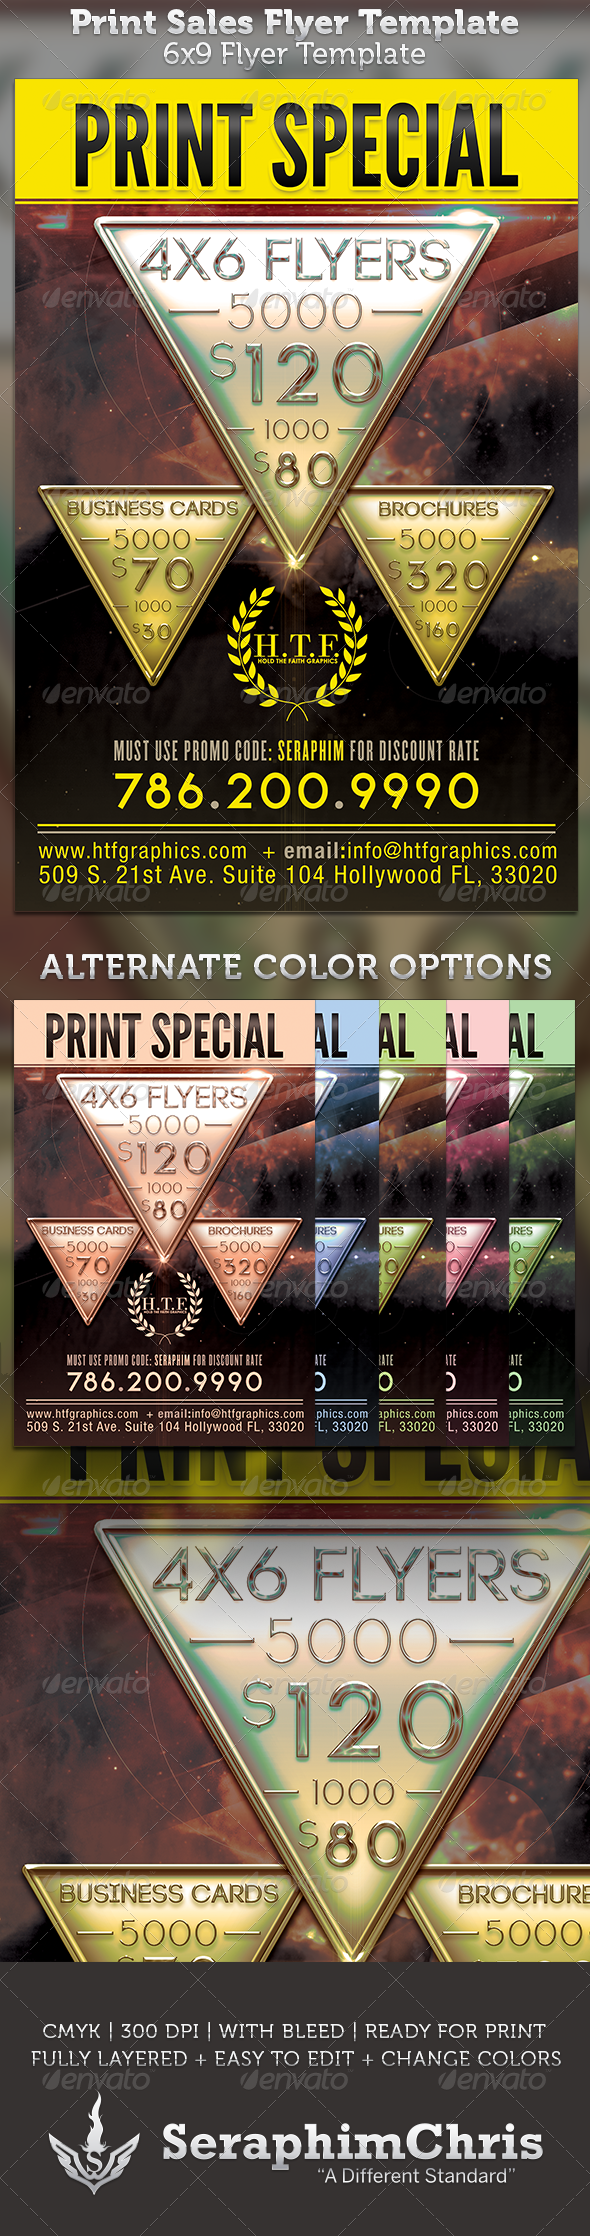 GraphicRiver Printer 6x9 Sales Flyer Template 3272376